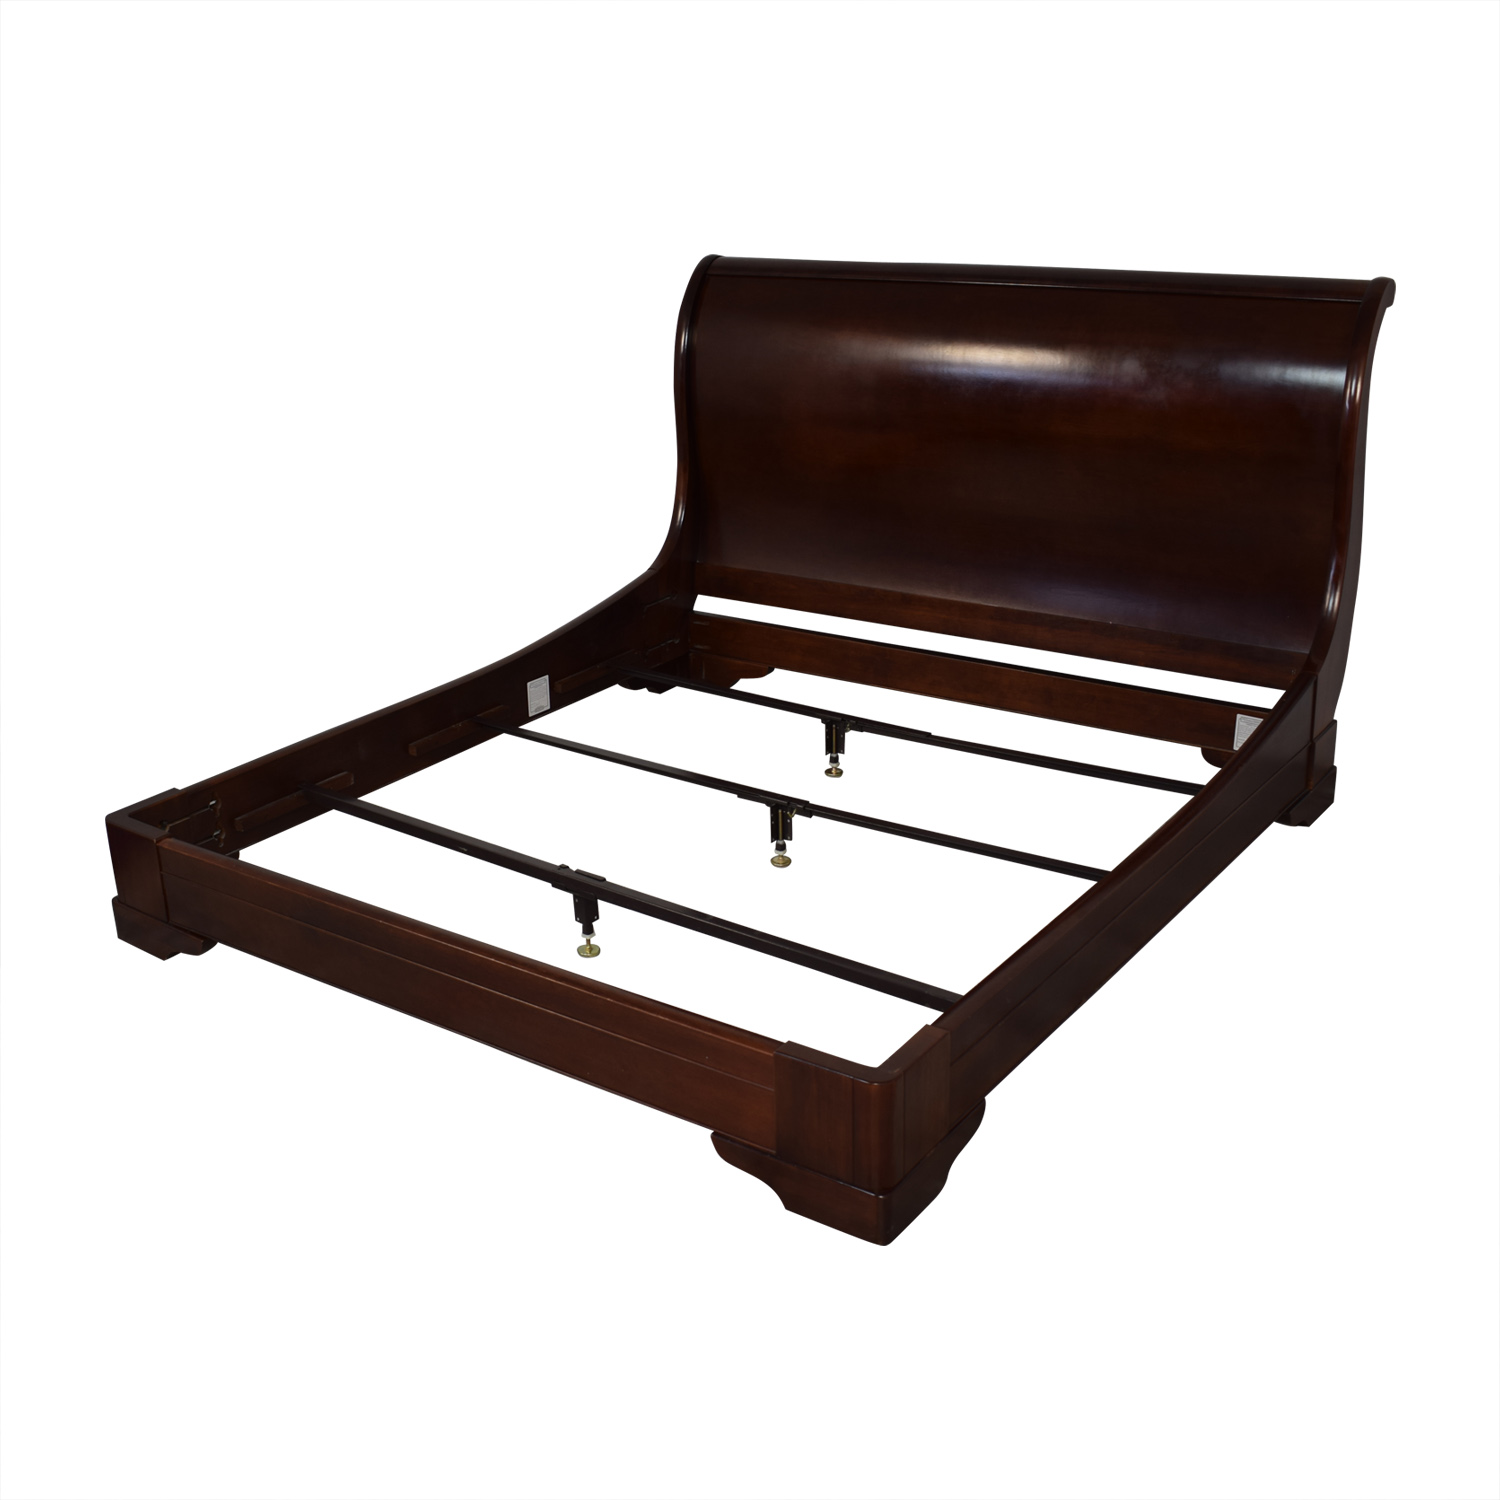 shop Restoration Hardware Restoration Hardware Marston King Sleigh Bed online